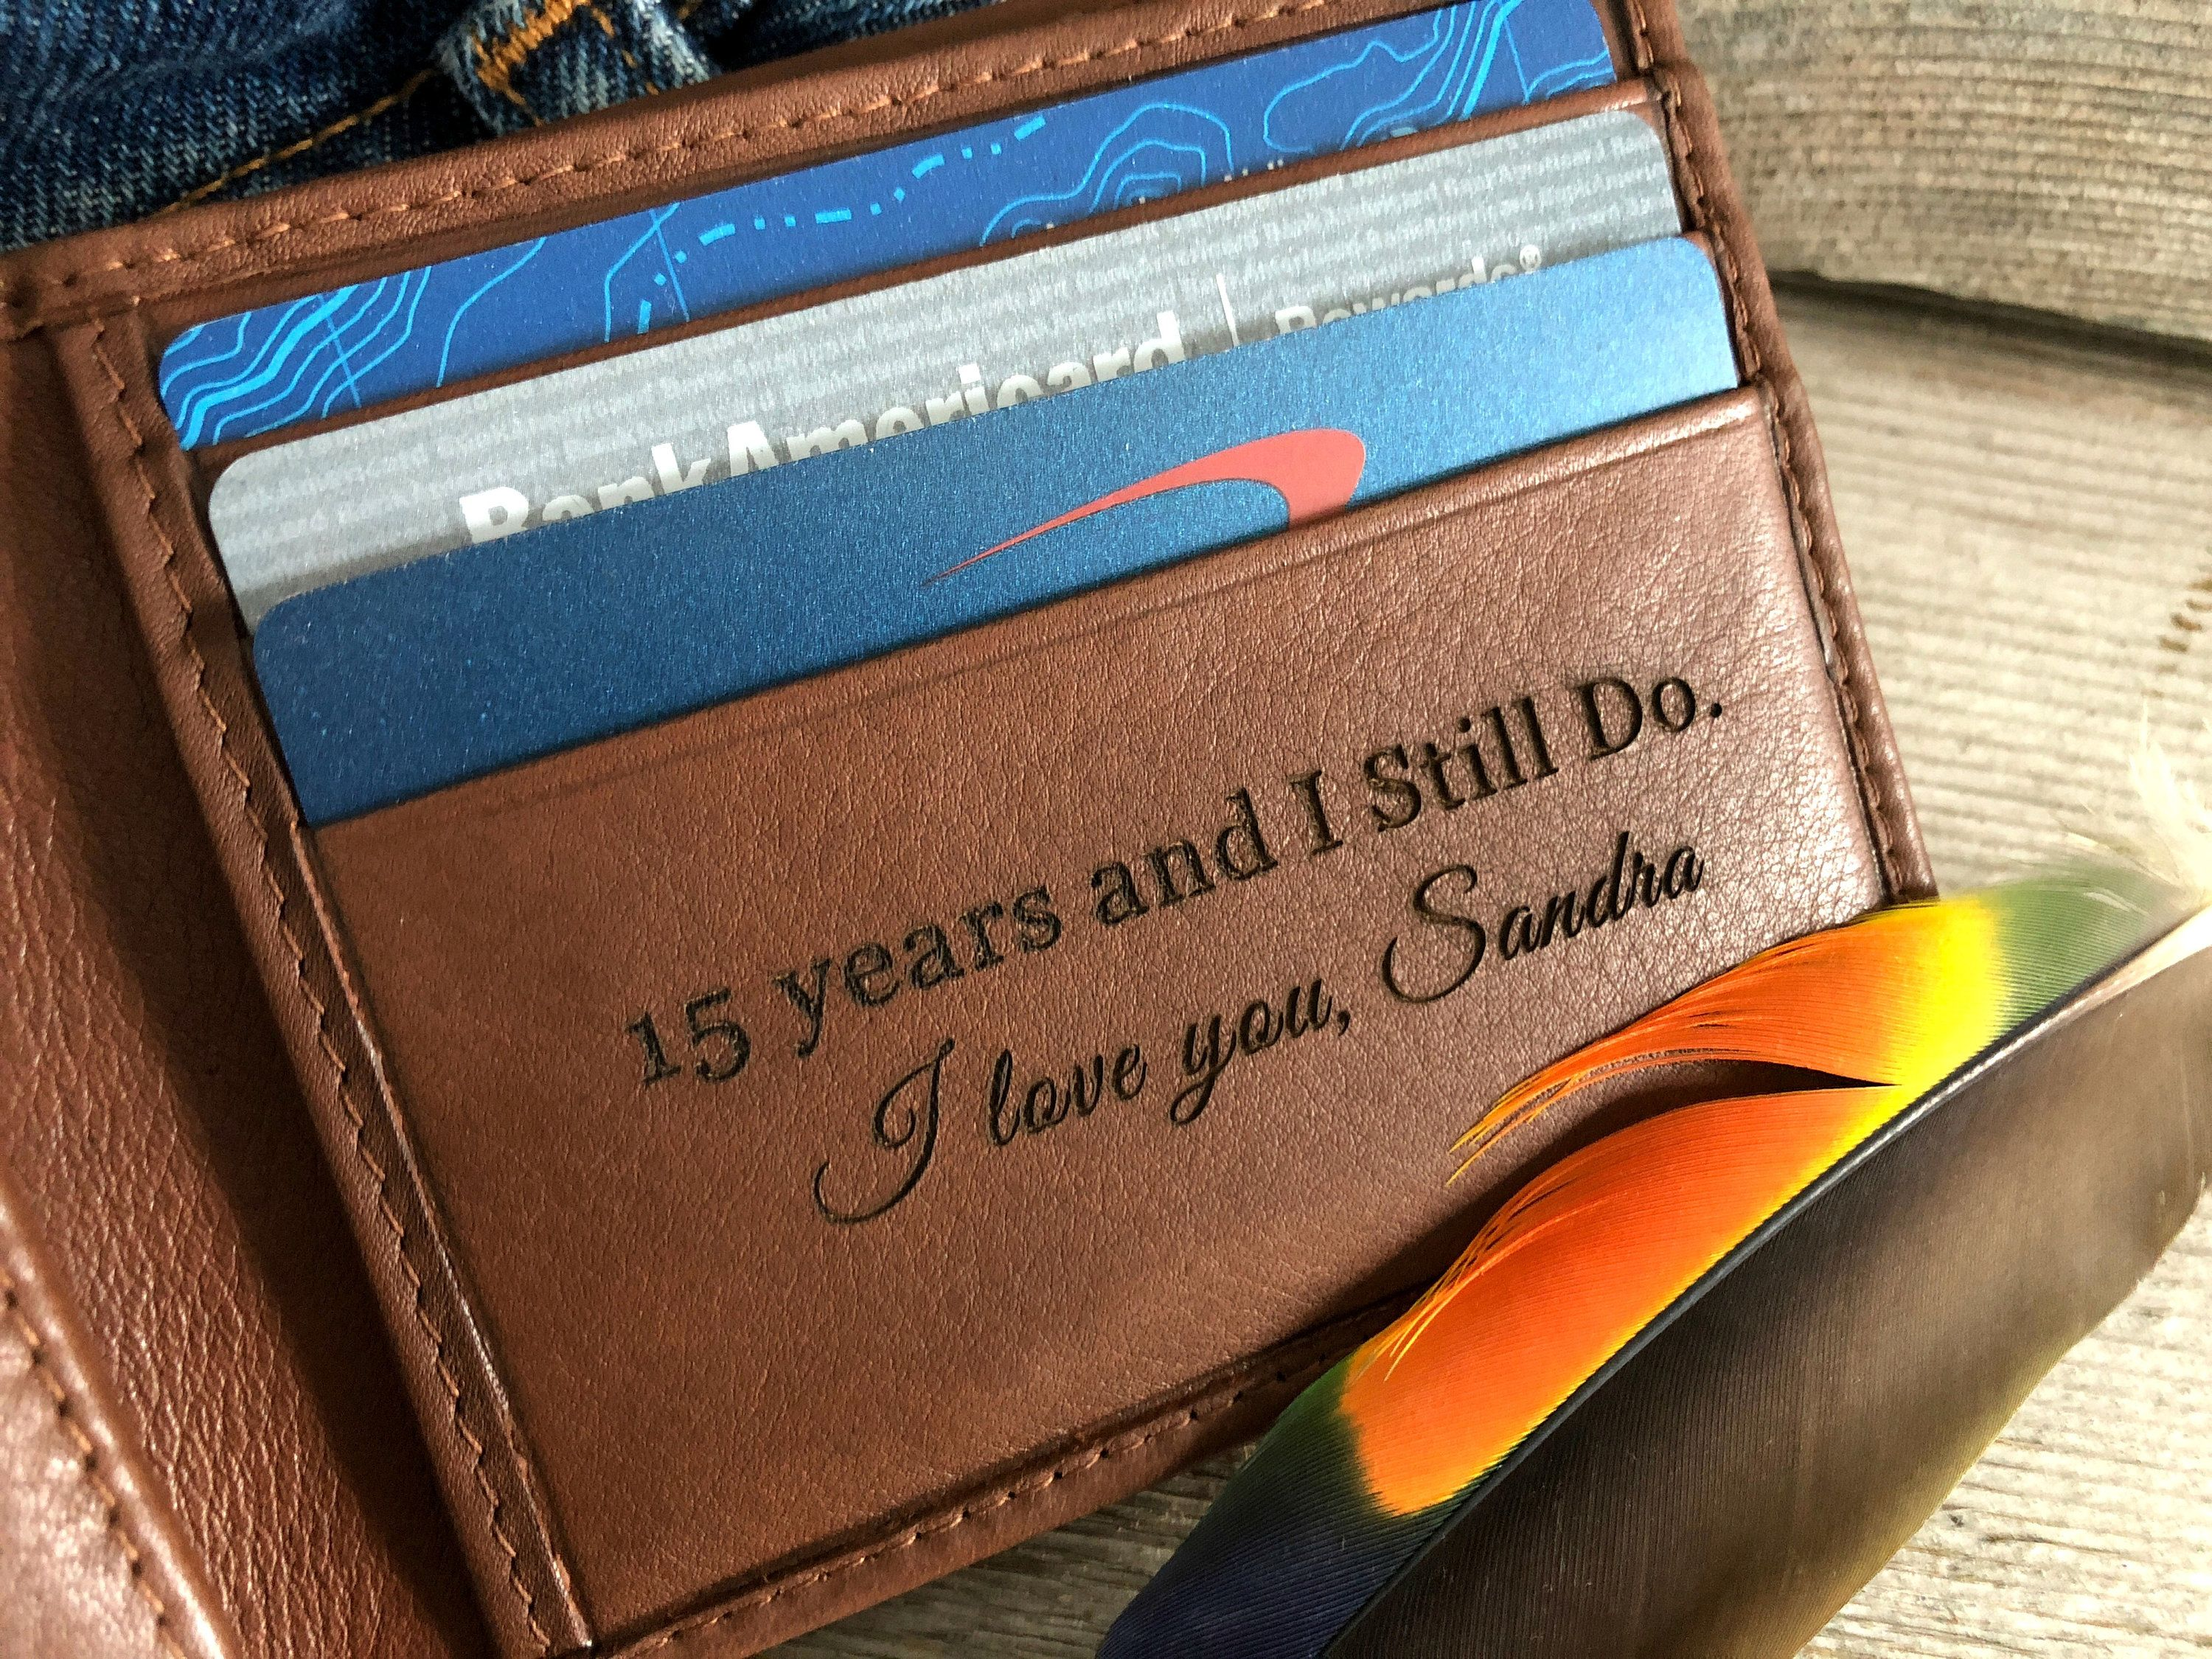 15th anniversary gifts for man • 15 years anniversary gift